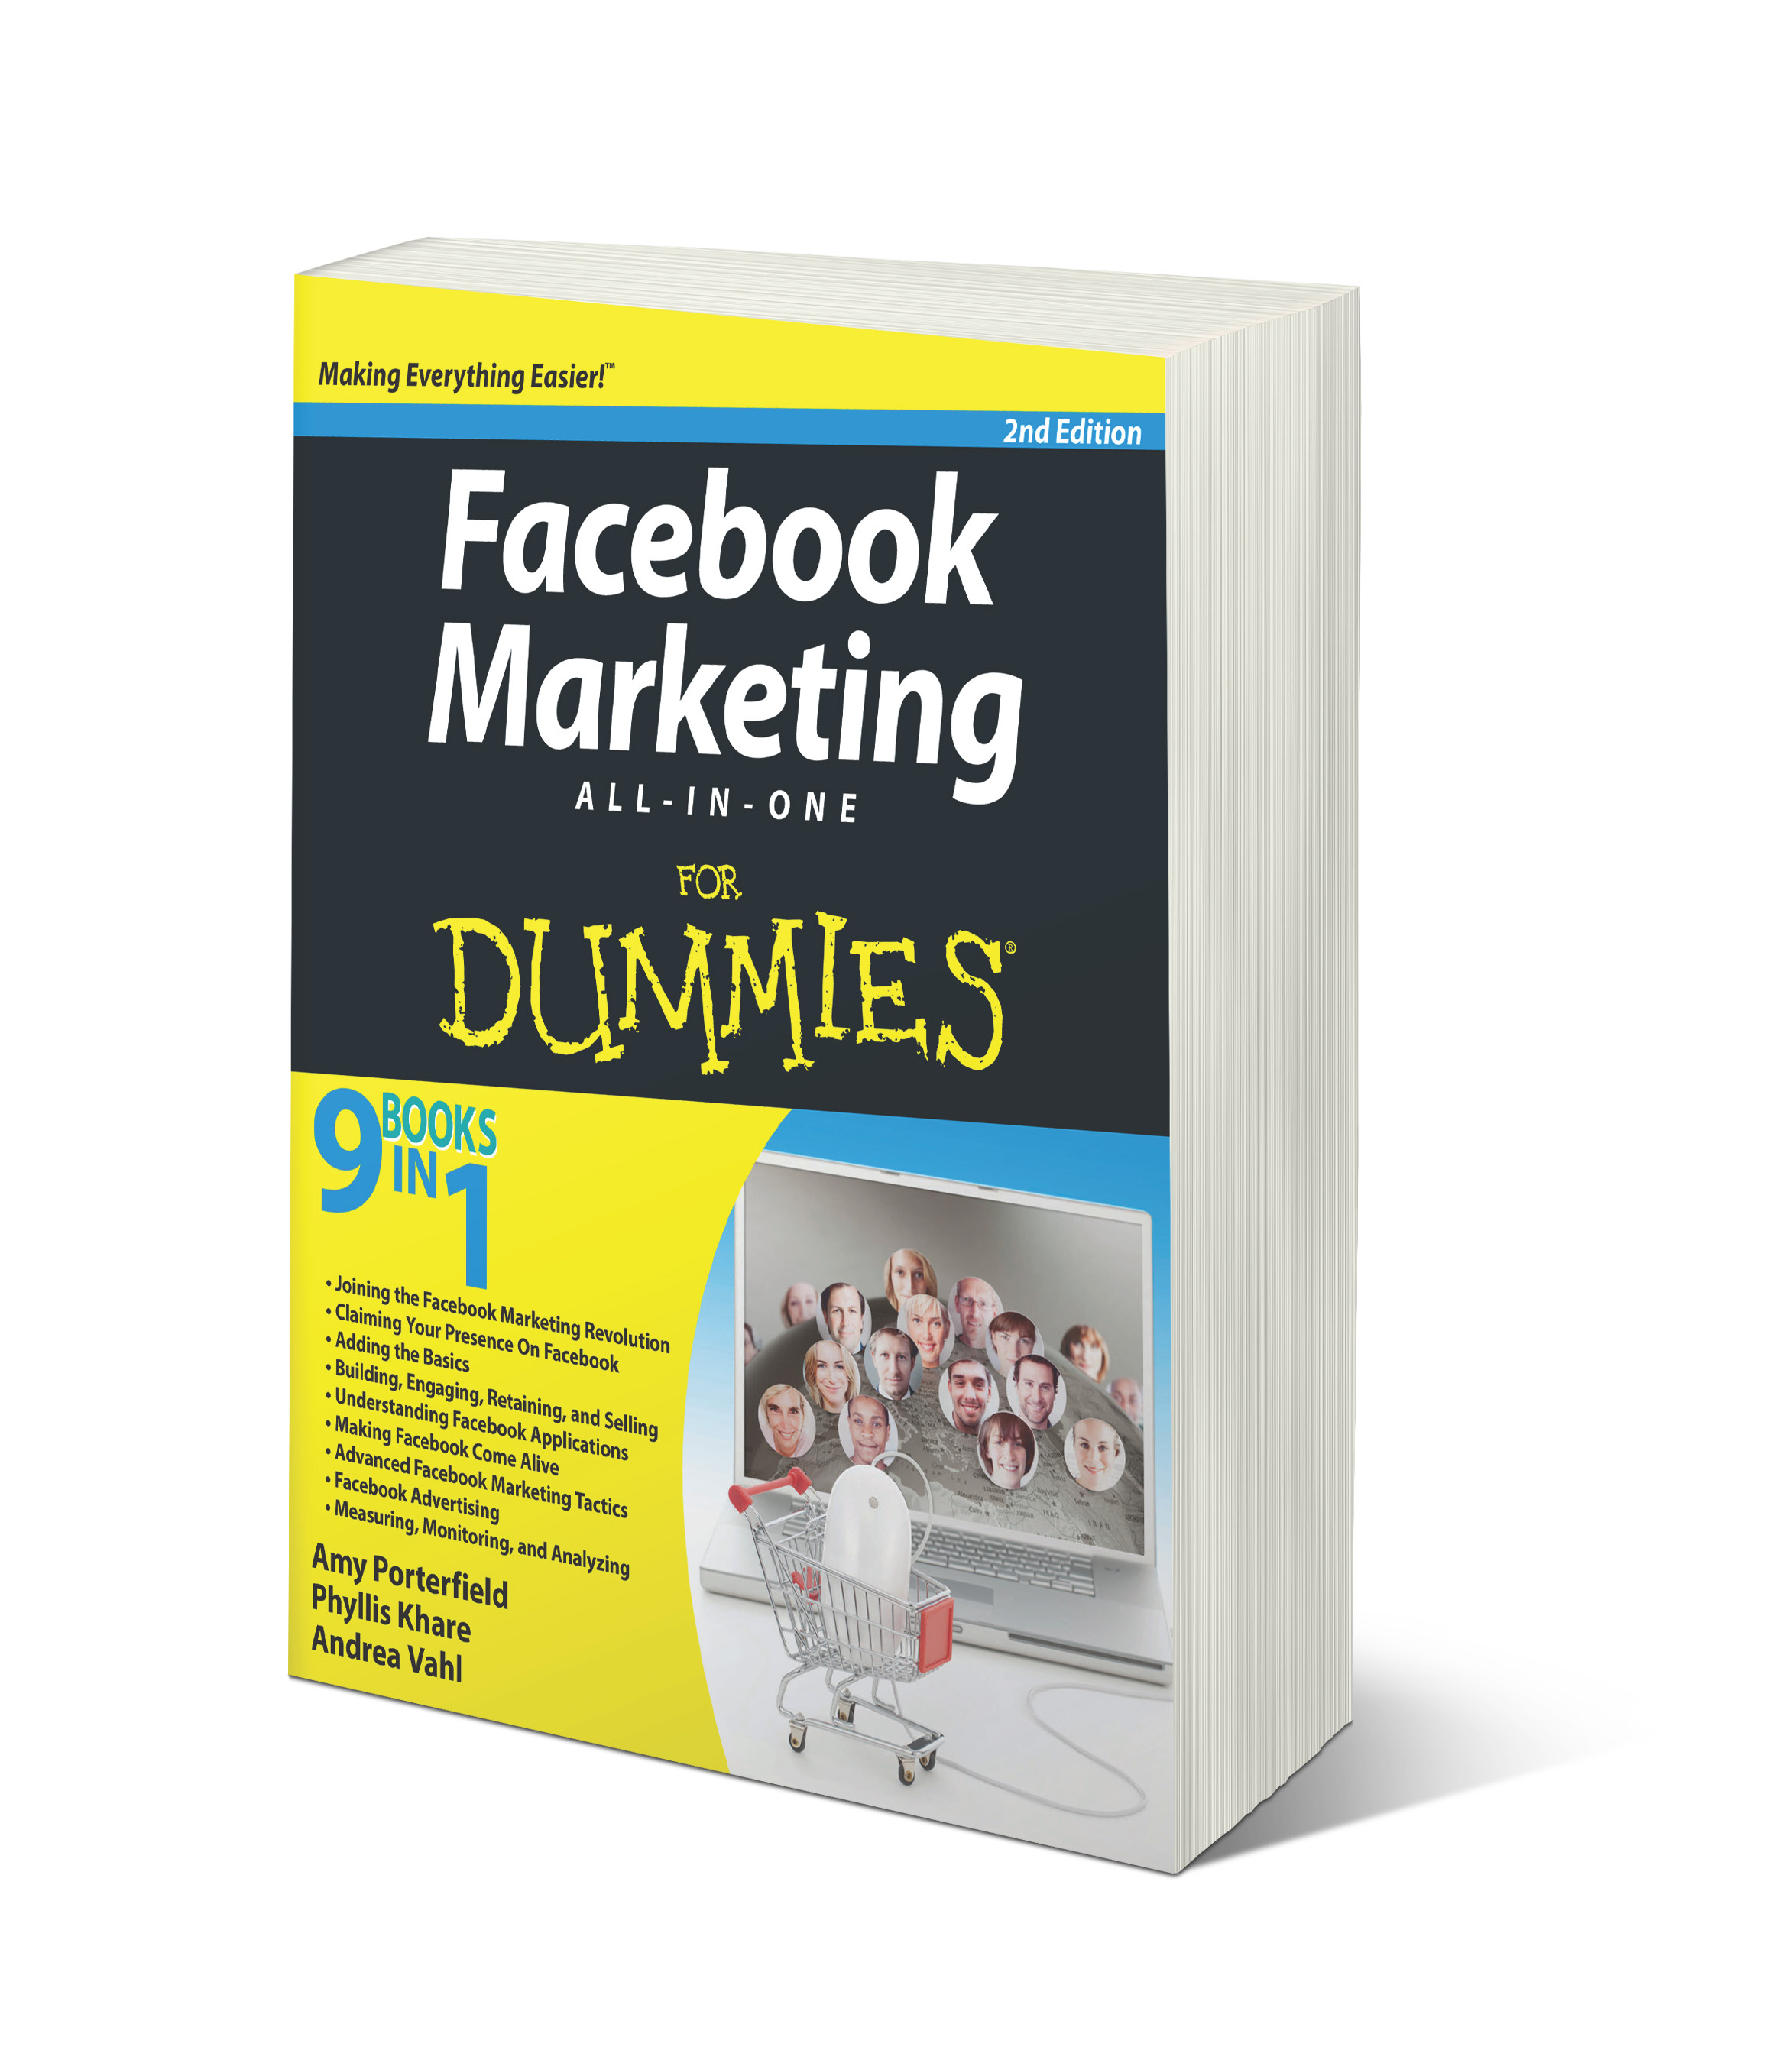 Facebook Marketing Al-In-One for Dummies - Phyllis Khare, Amy Porterfield, Andrea Vahl